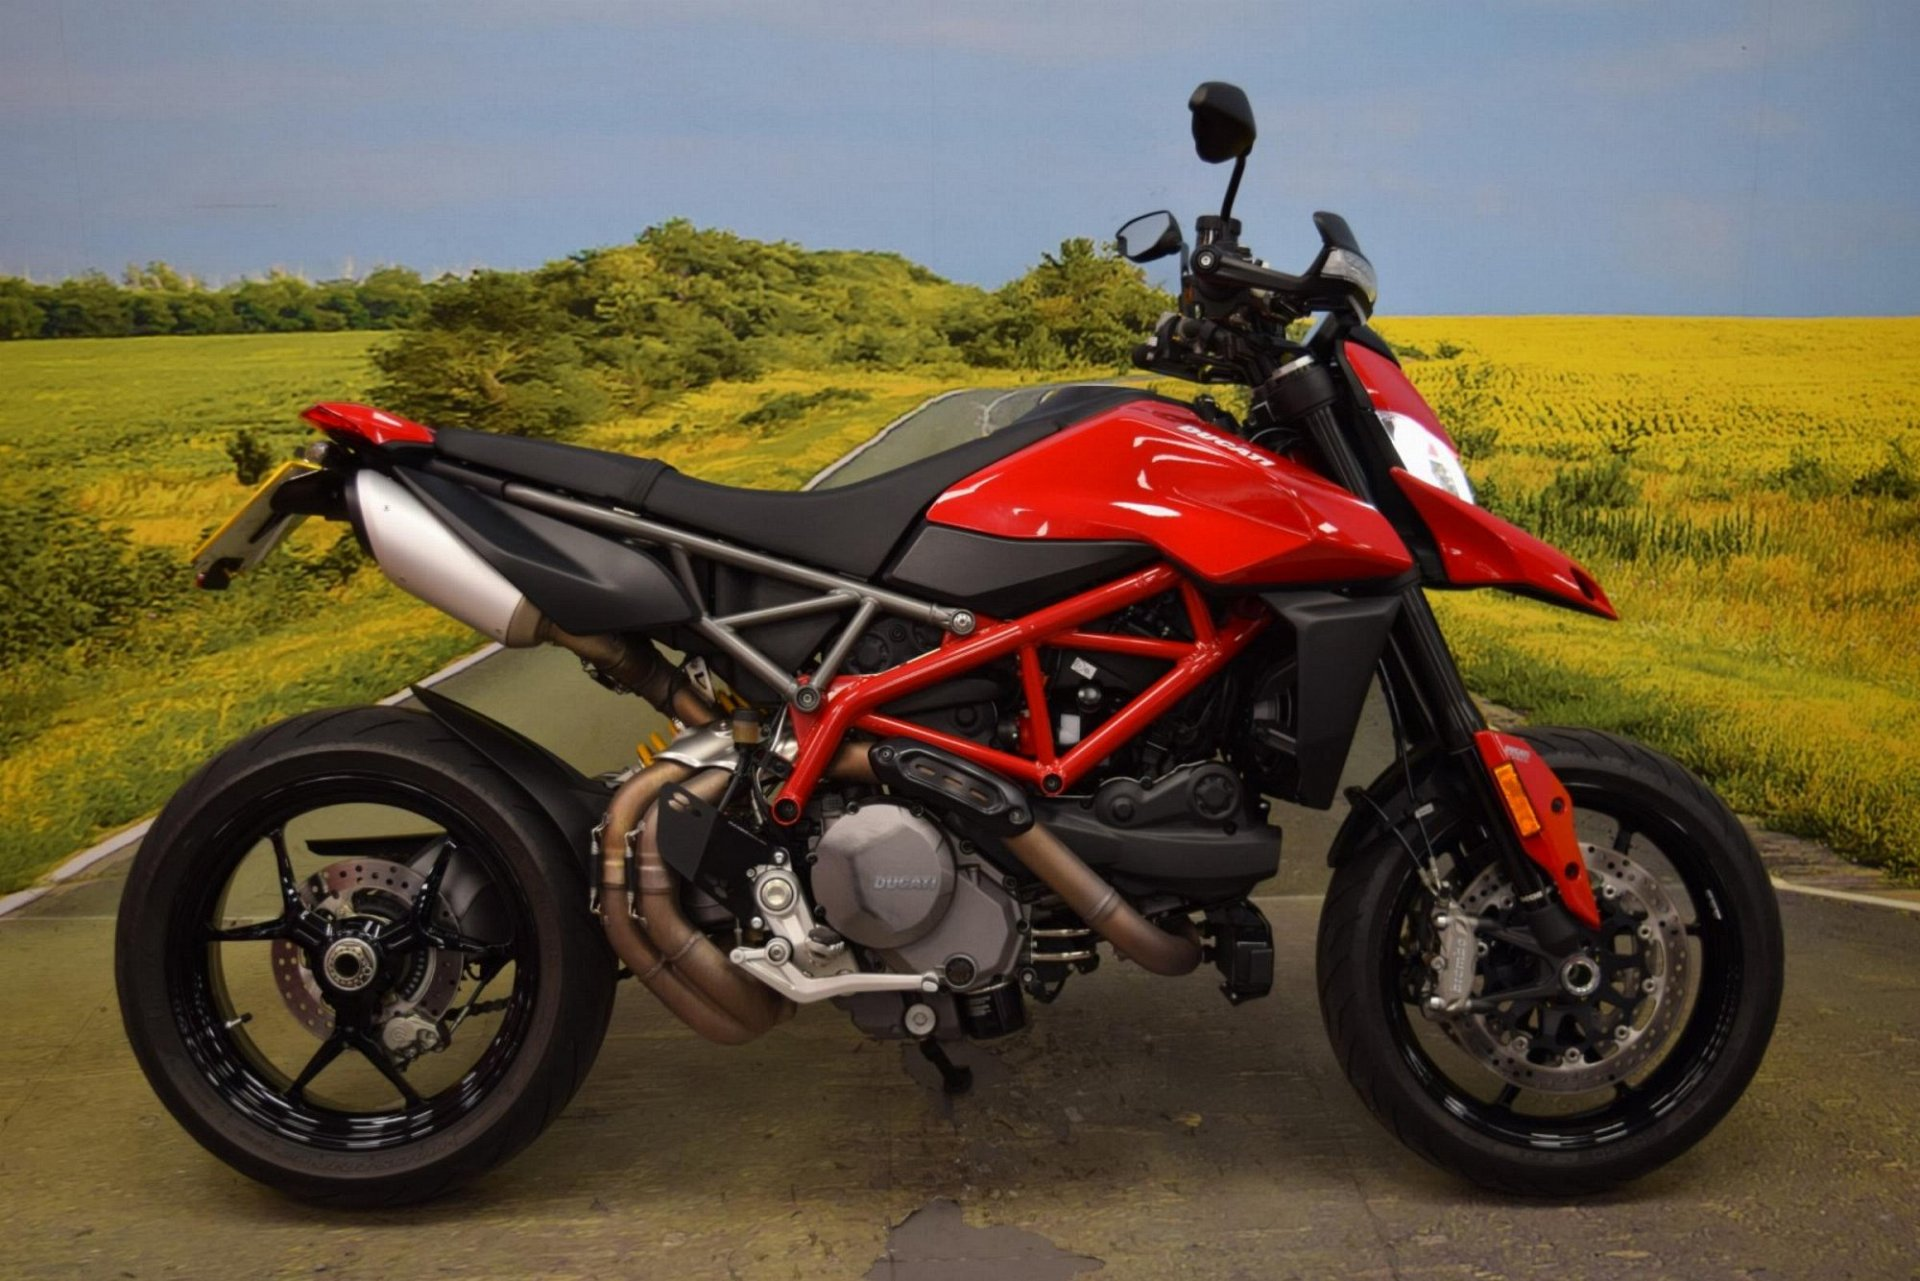 2019 Ducati Hypermotard 950 for sale in Staffordshire